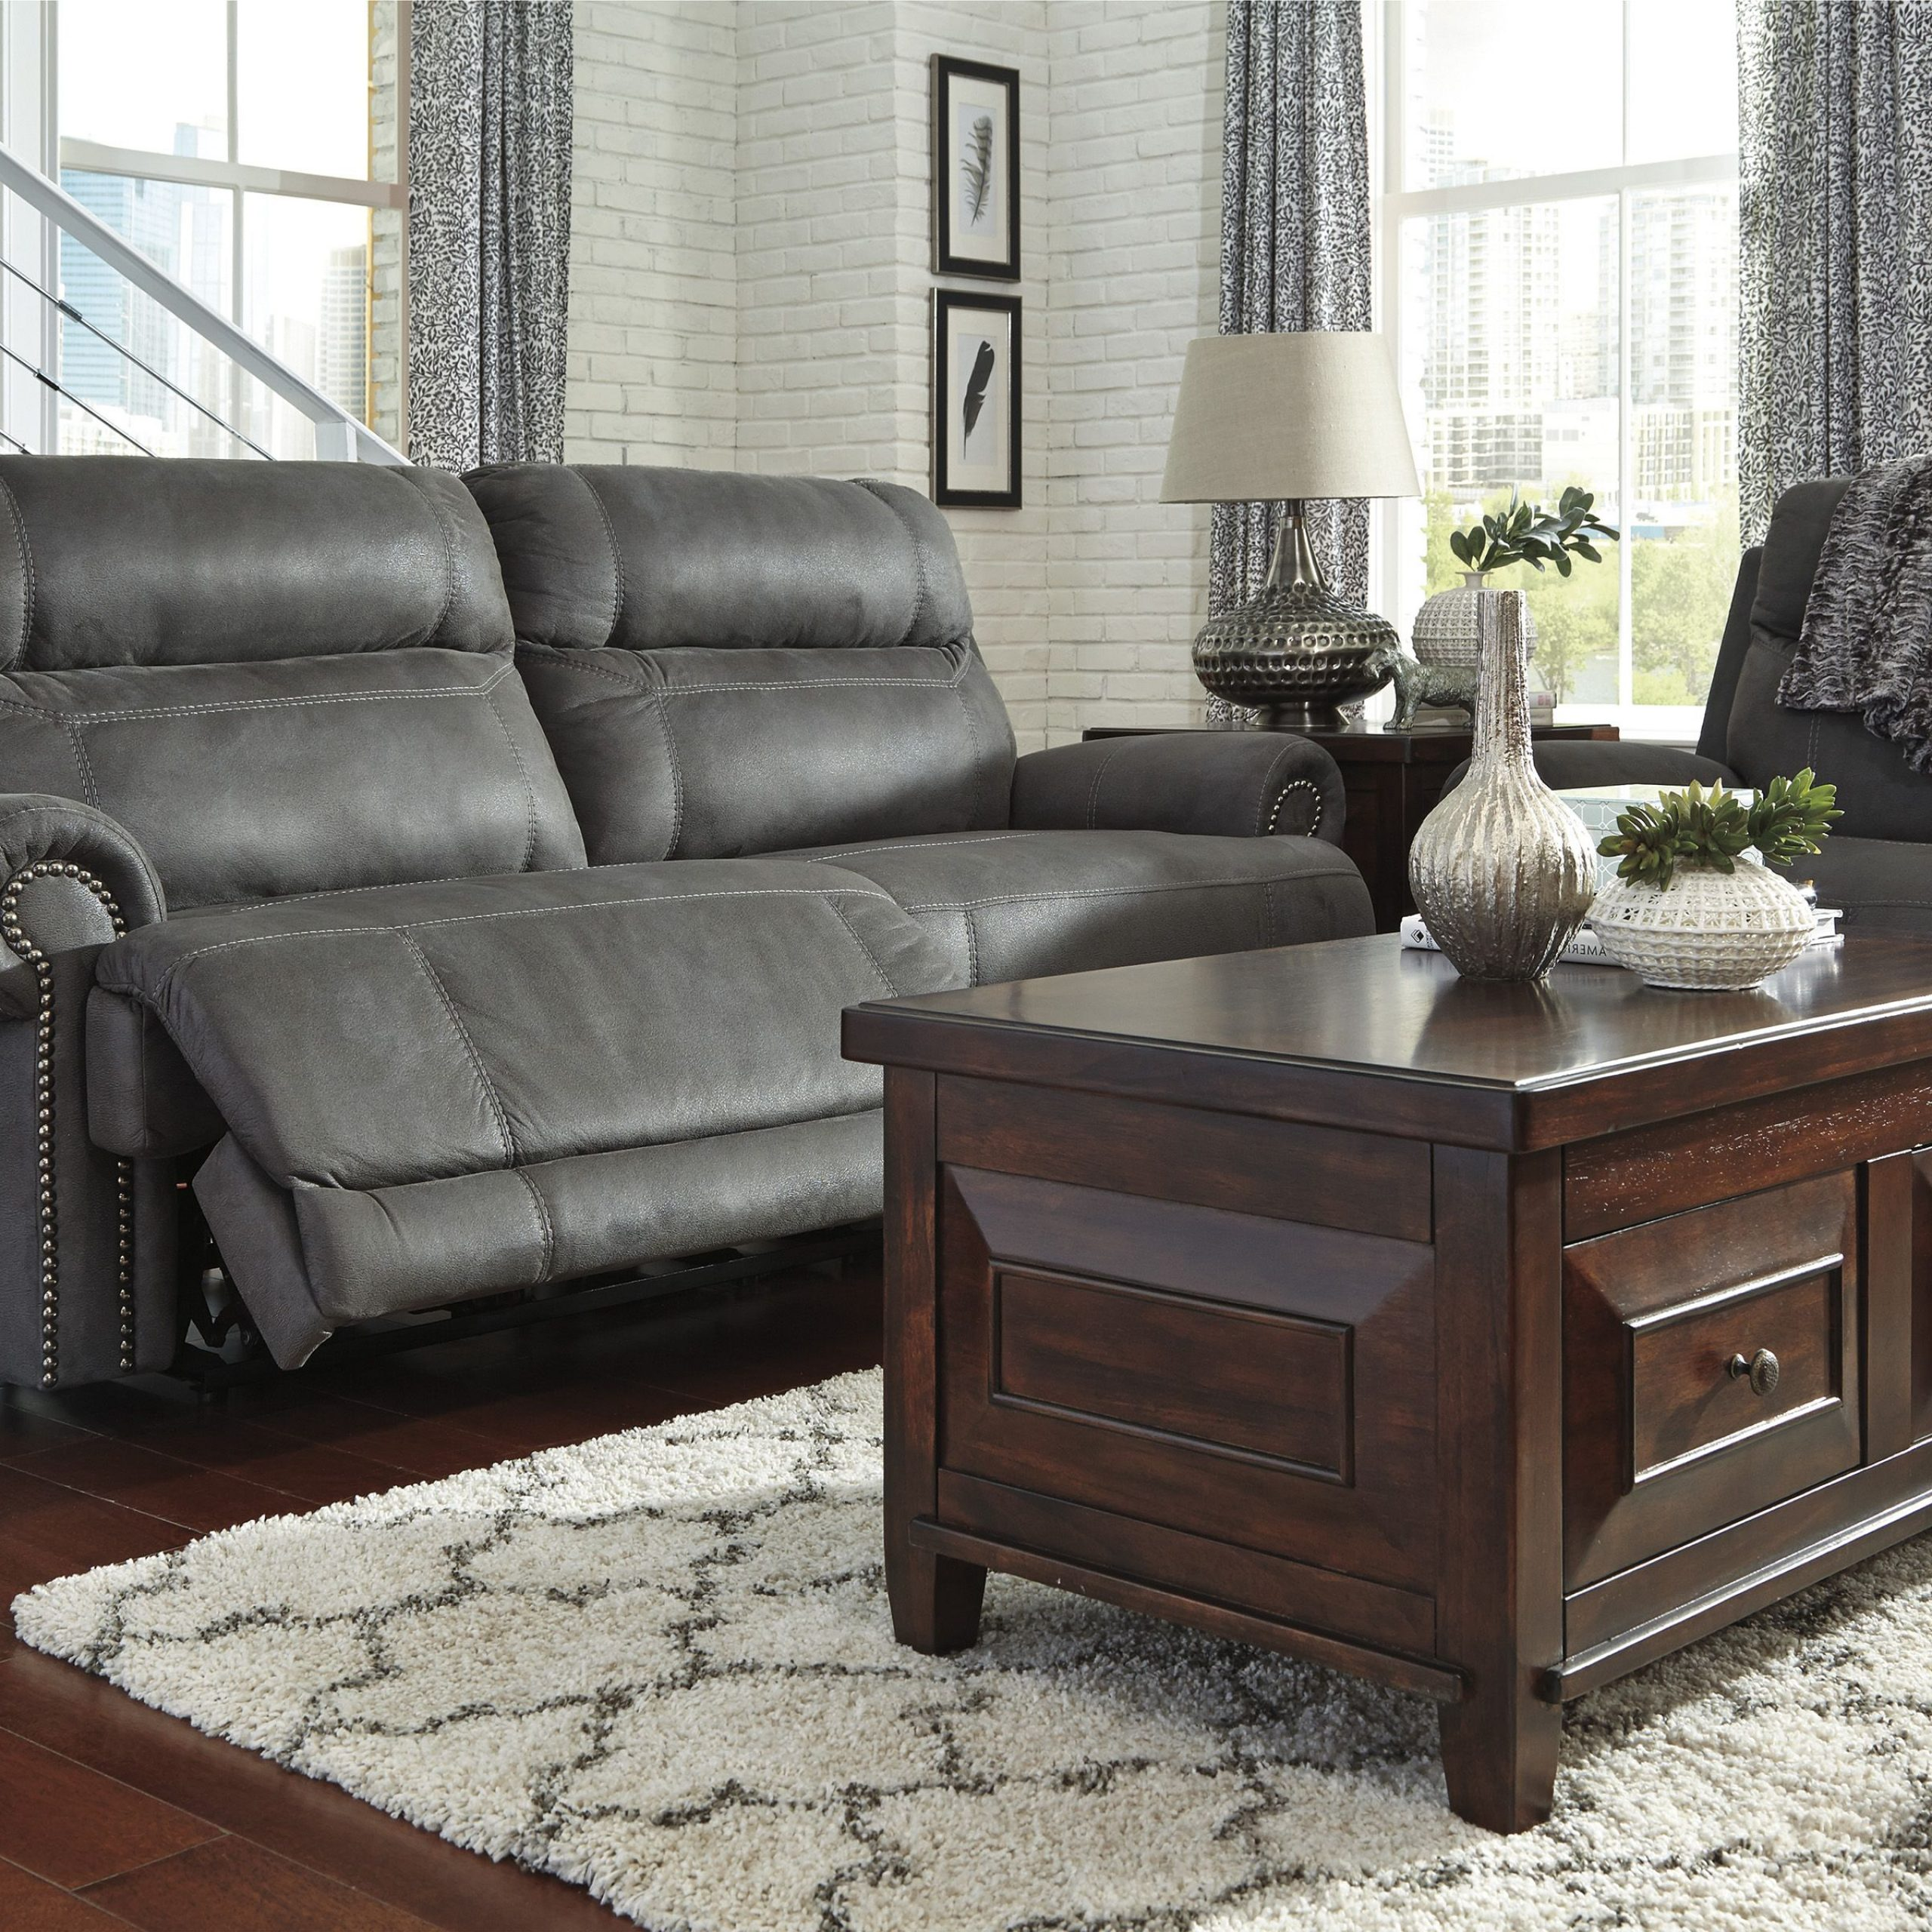 Trendy Austere Gray Reclining Sofa (View 14 of 17)